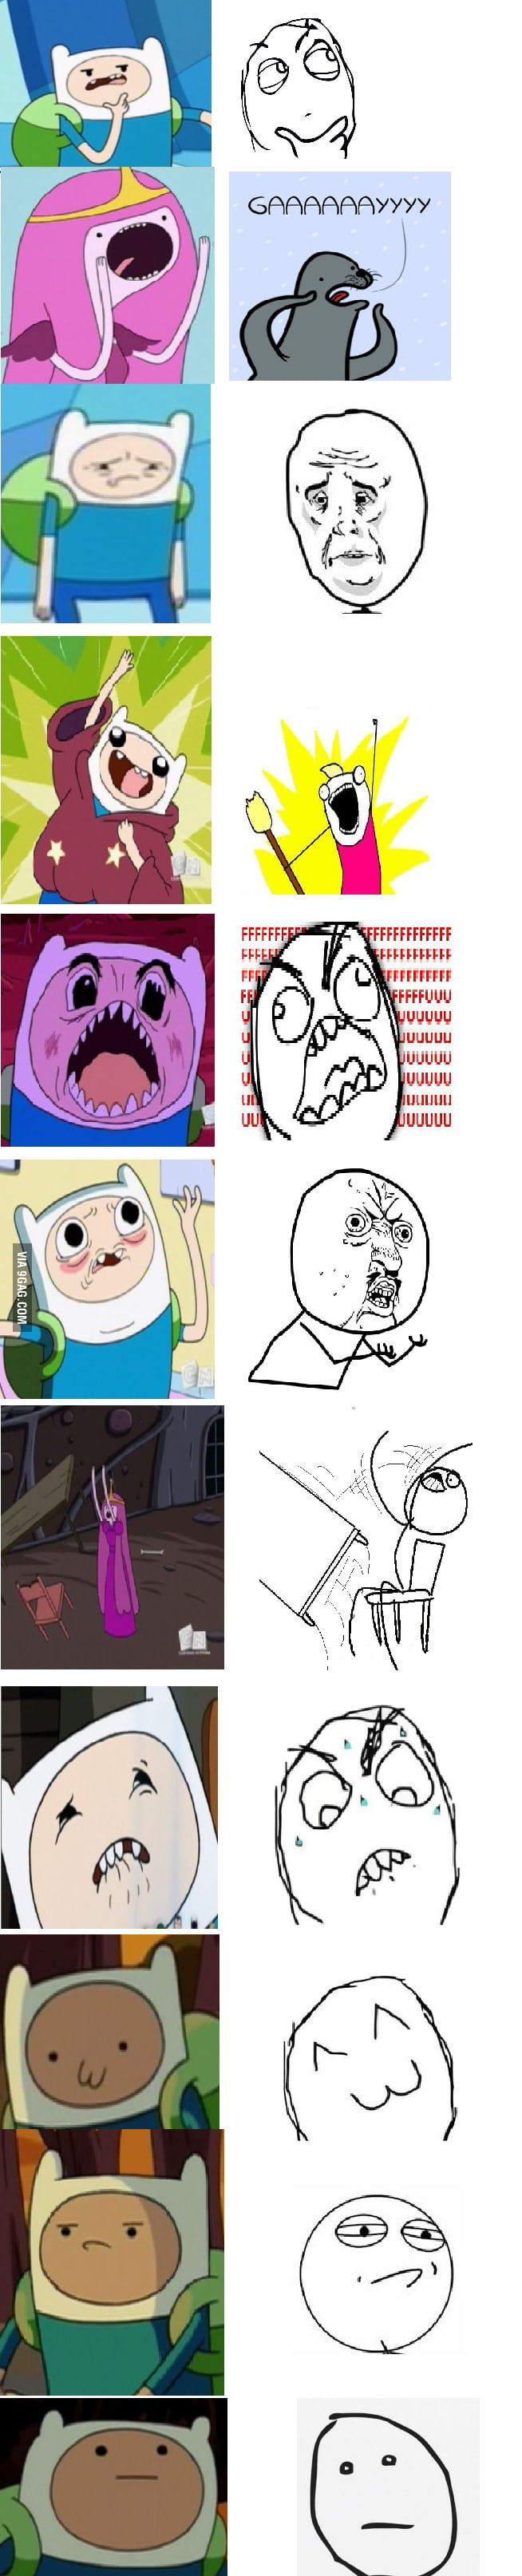 Memes in Adventure Time Part1